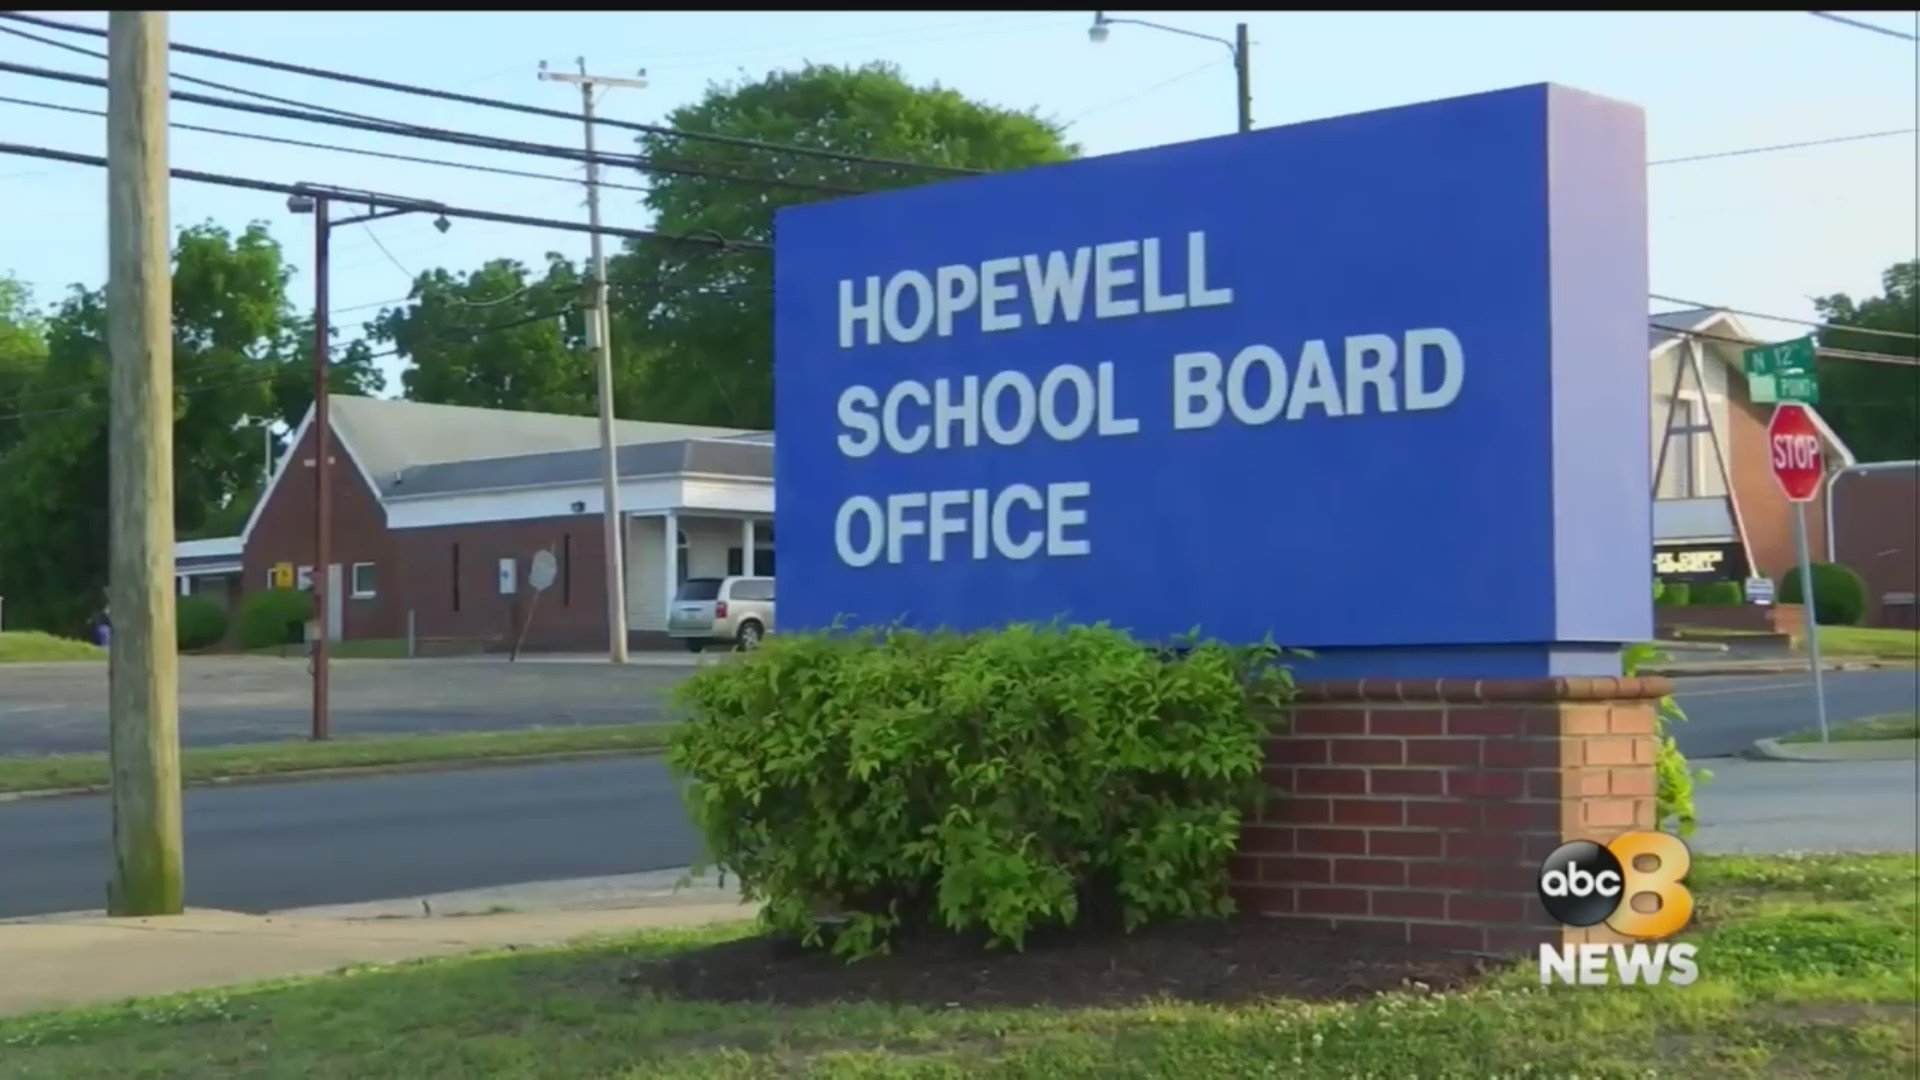 All Hopewell schools to open year-round after board vote